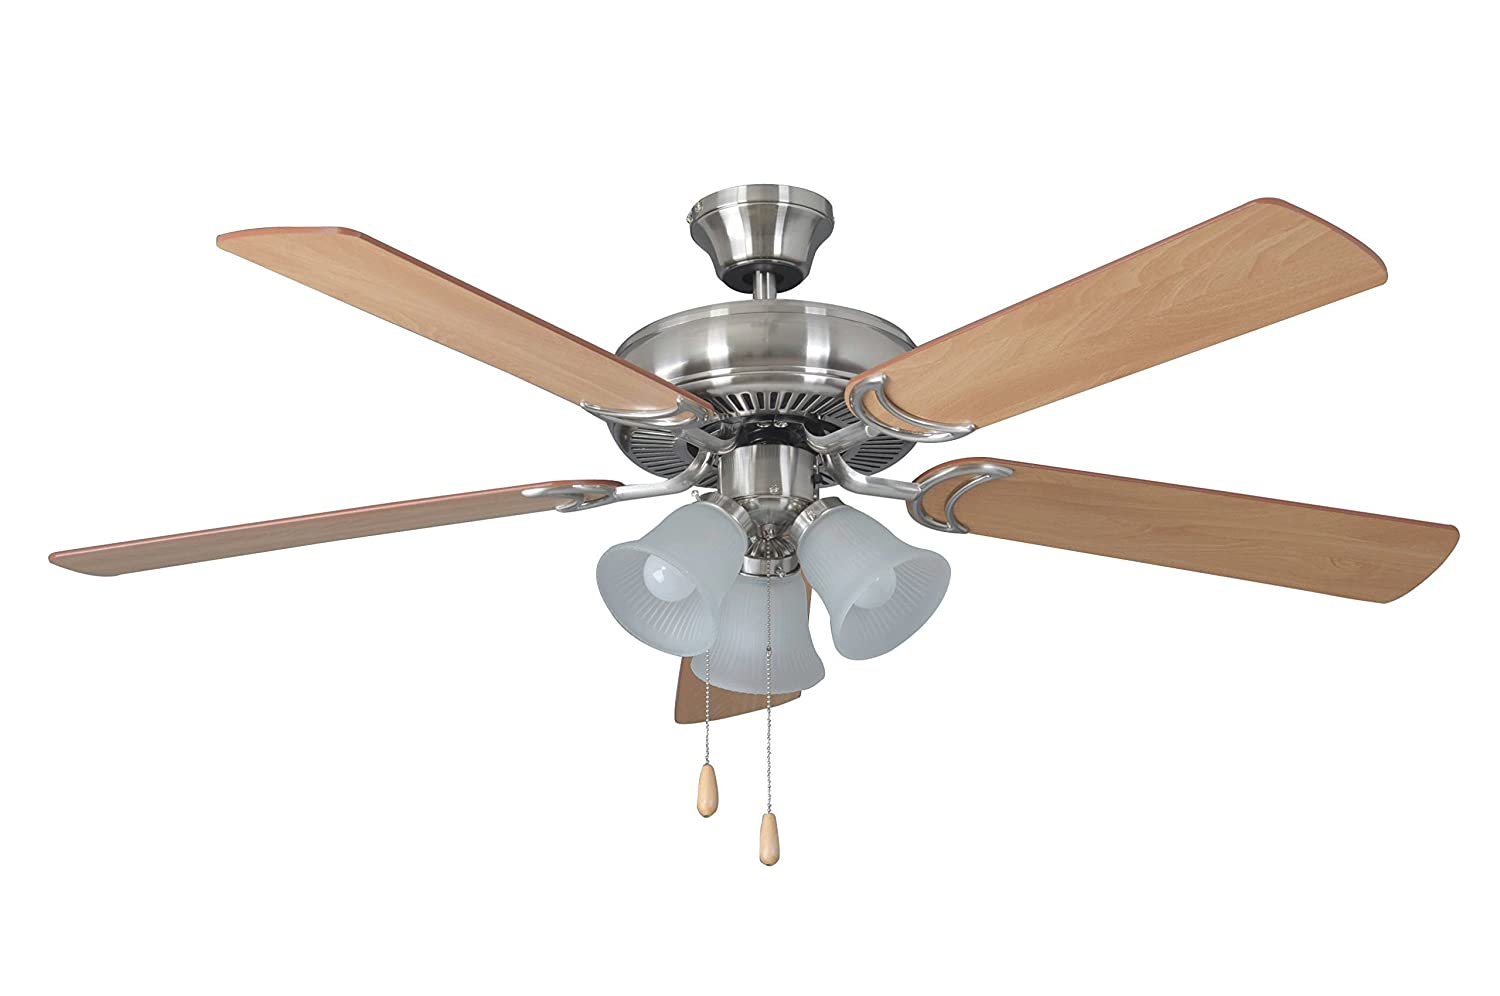 Litex e dcf52bnk5c3 decorators choice 52 inch ceiling fan with five litex e dcf52bnk5c3 decorators choice 52 inch ceiling fan with five reversible light maplemahogany blades and three light kit with ribbed frosted glass aloadofball Images